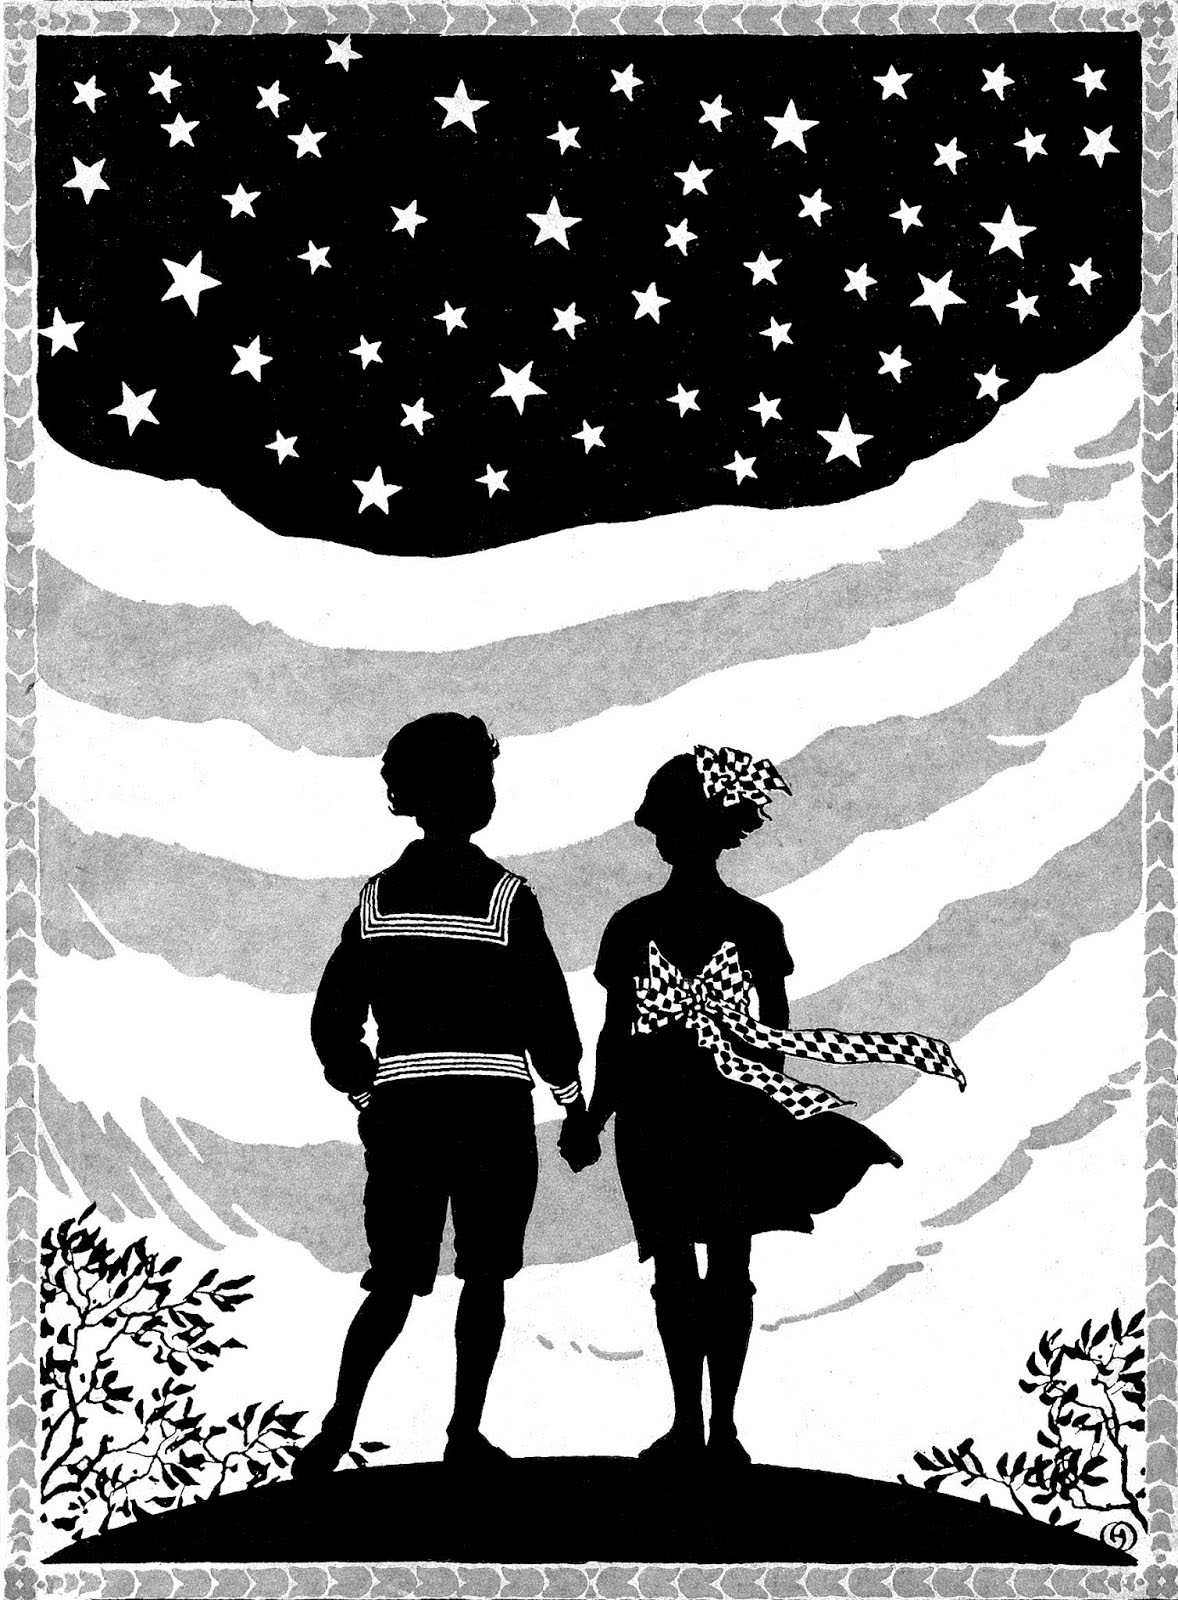 Patriotic Silhouette Flag in Background Children Hold Hands